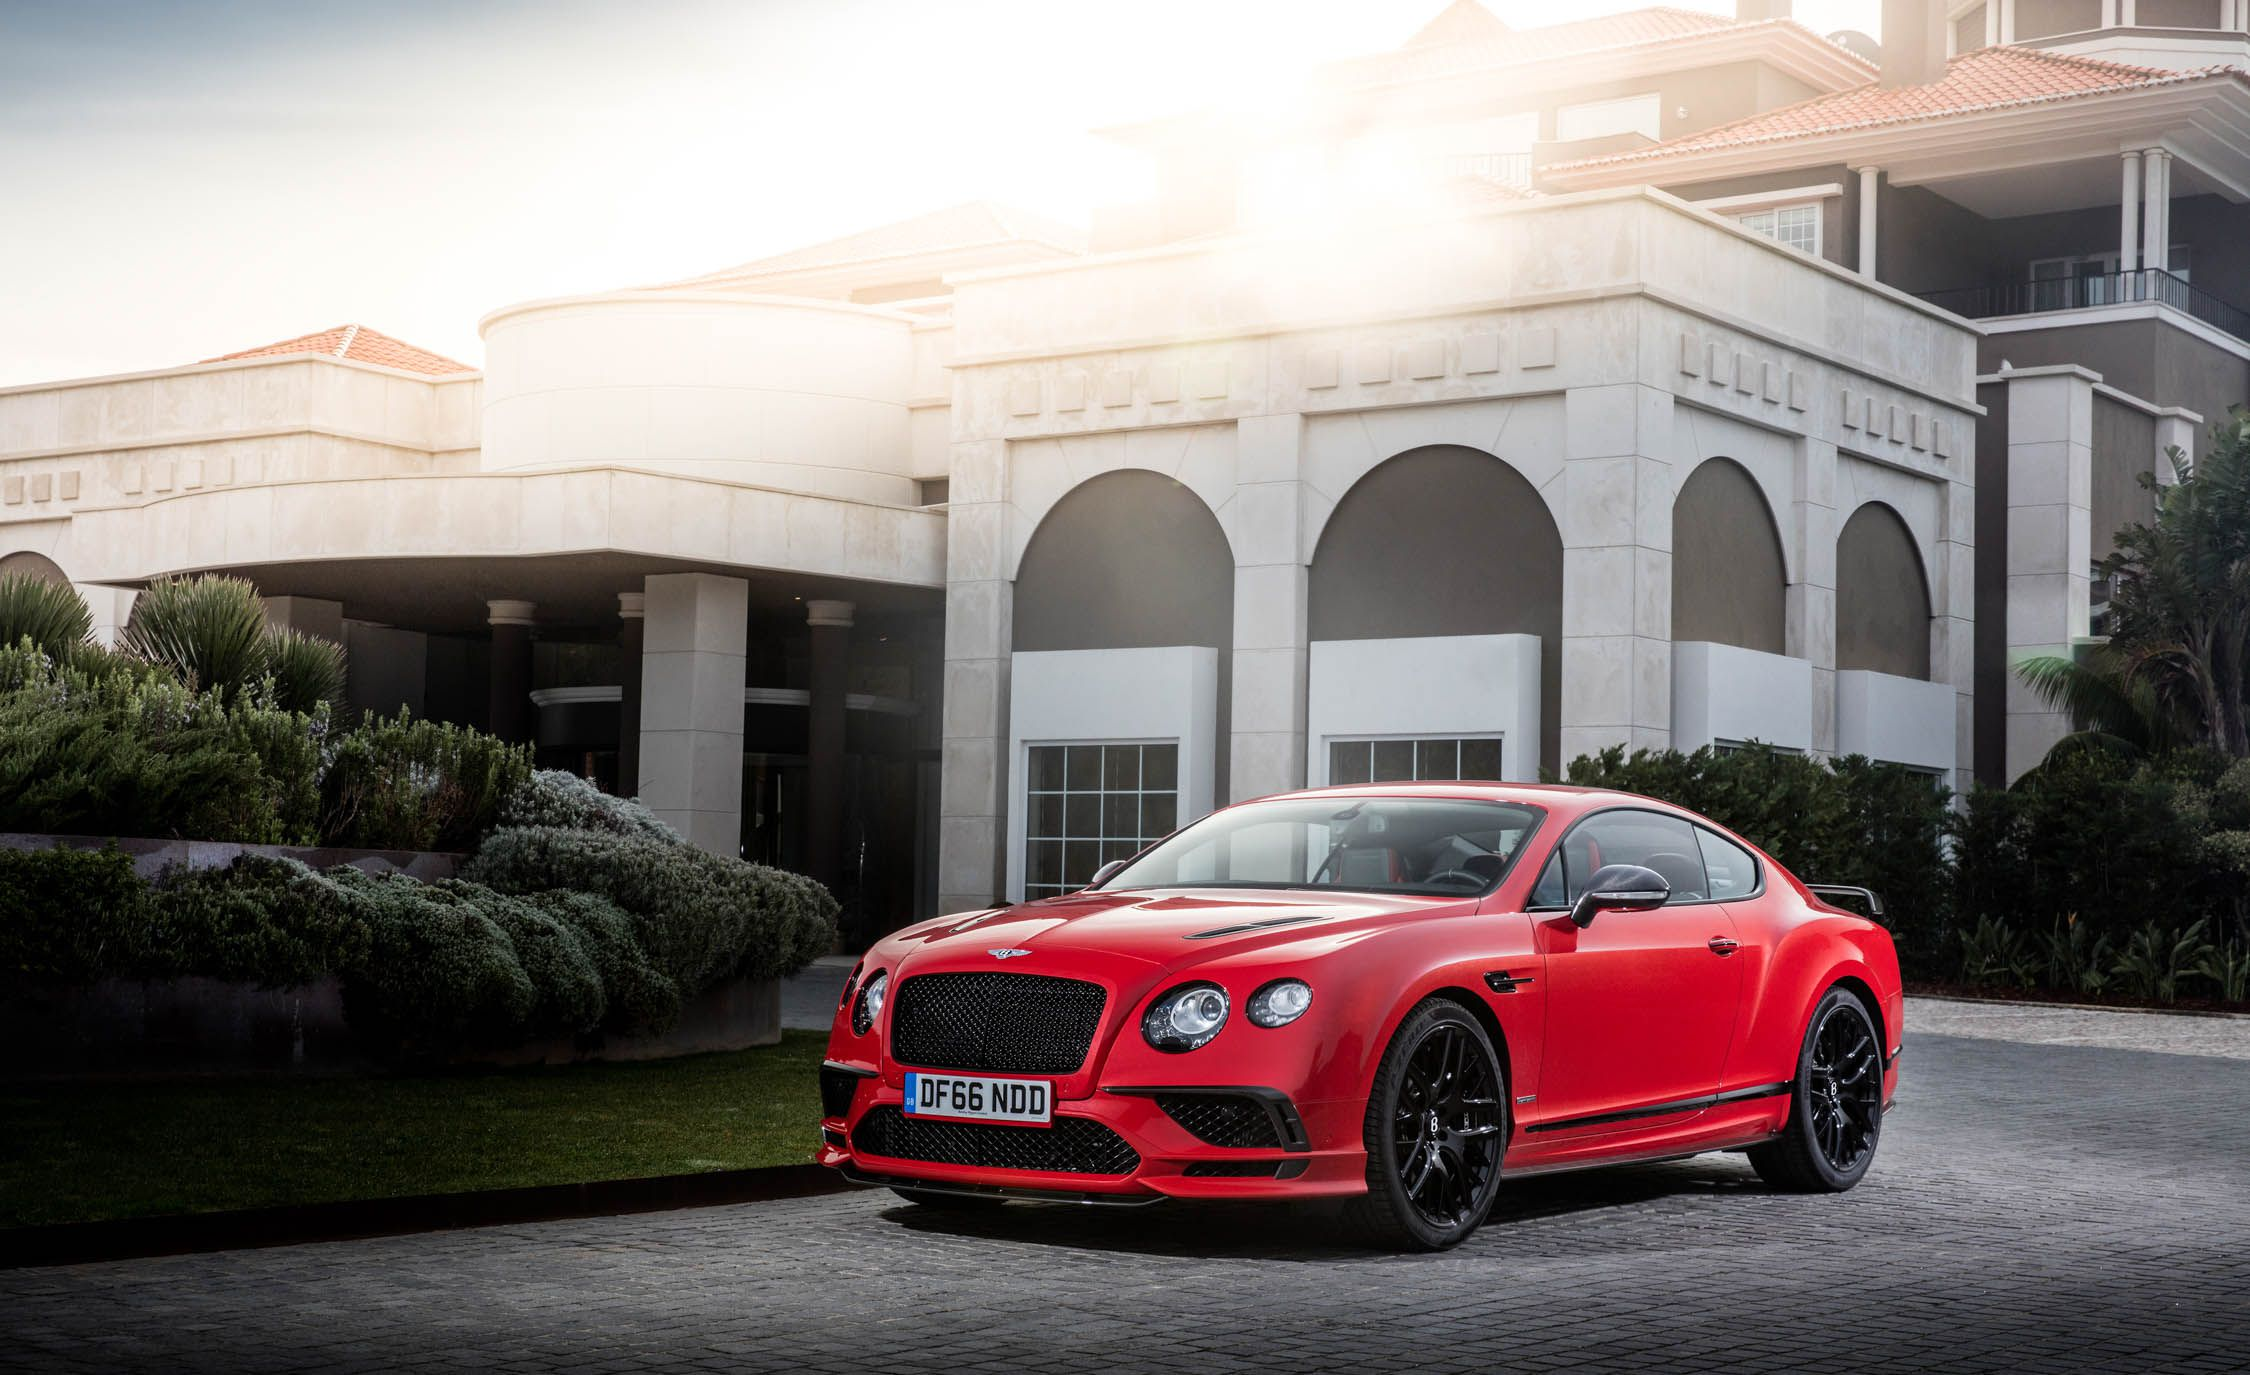 2018 Bentley Continental GT Supersports Coupe (Color: St. James Red) Front Three-Quarter Wallpapers (10)